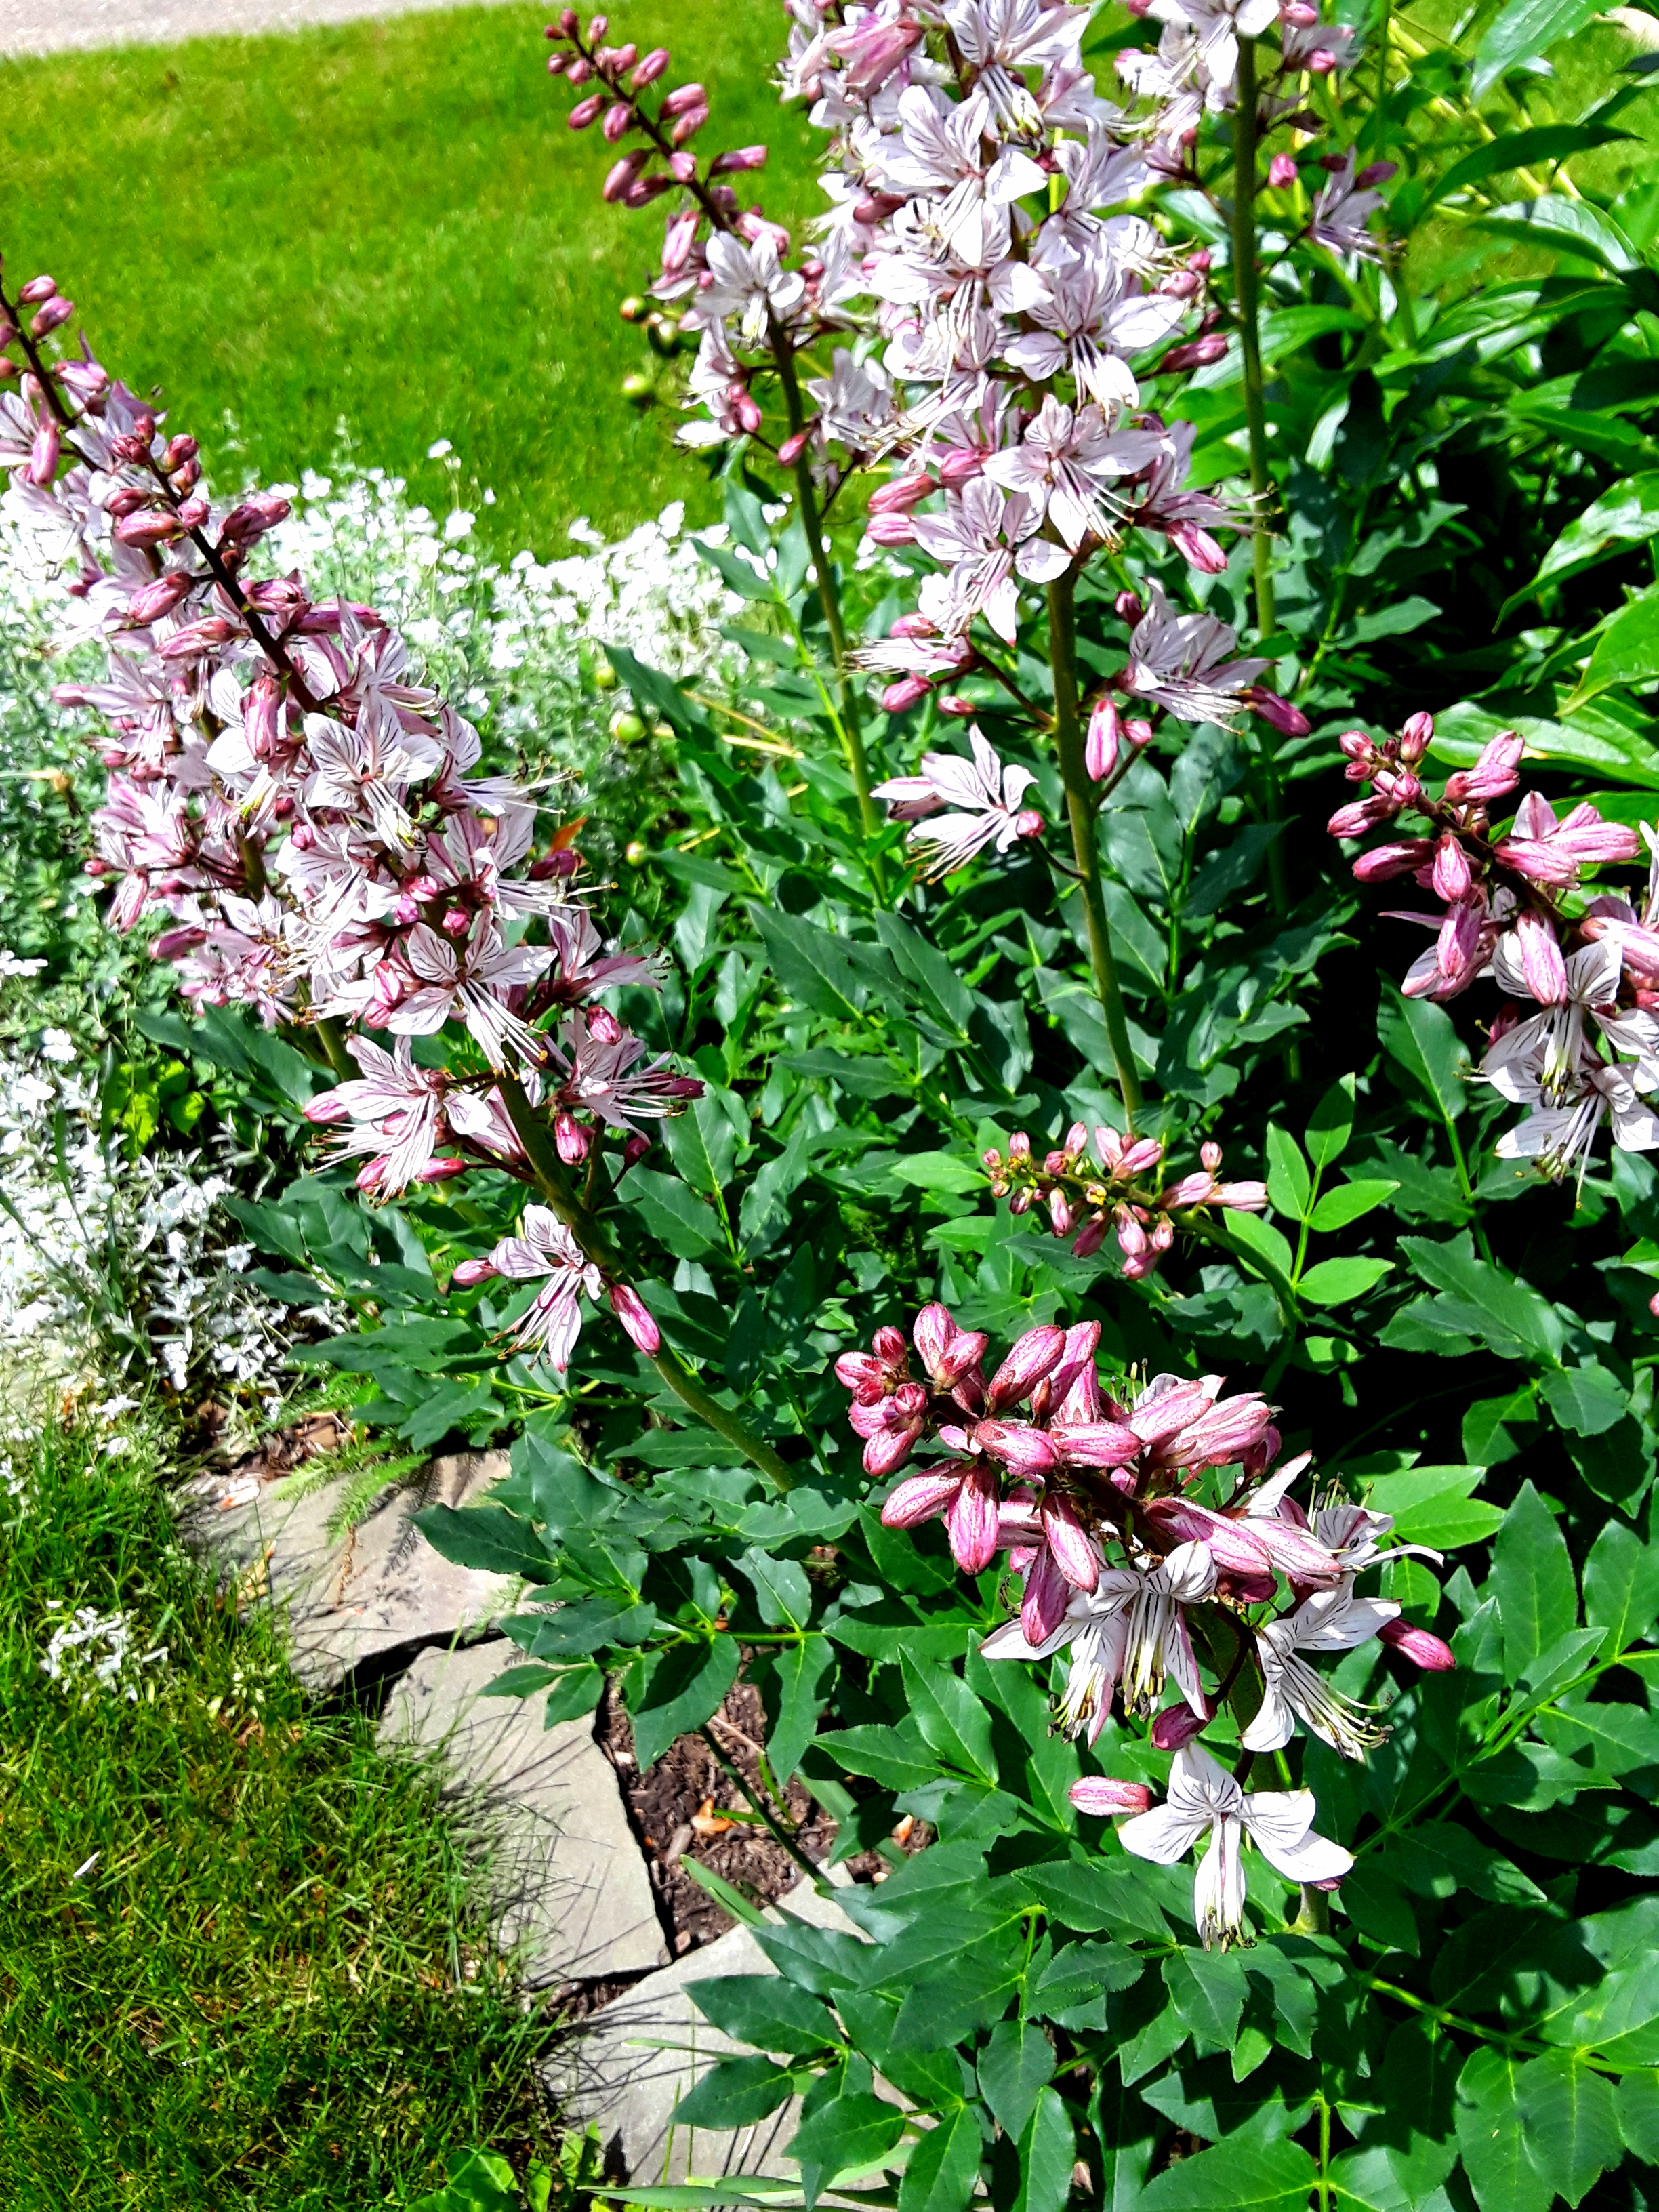 The flowers of Dictamnus albus (Peruvian lily) are pink and white